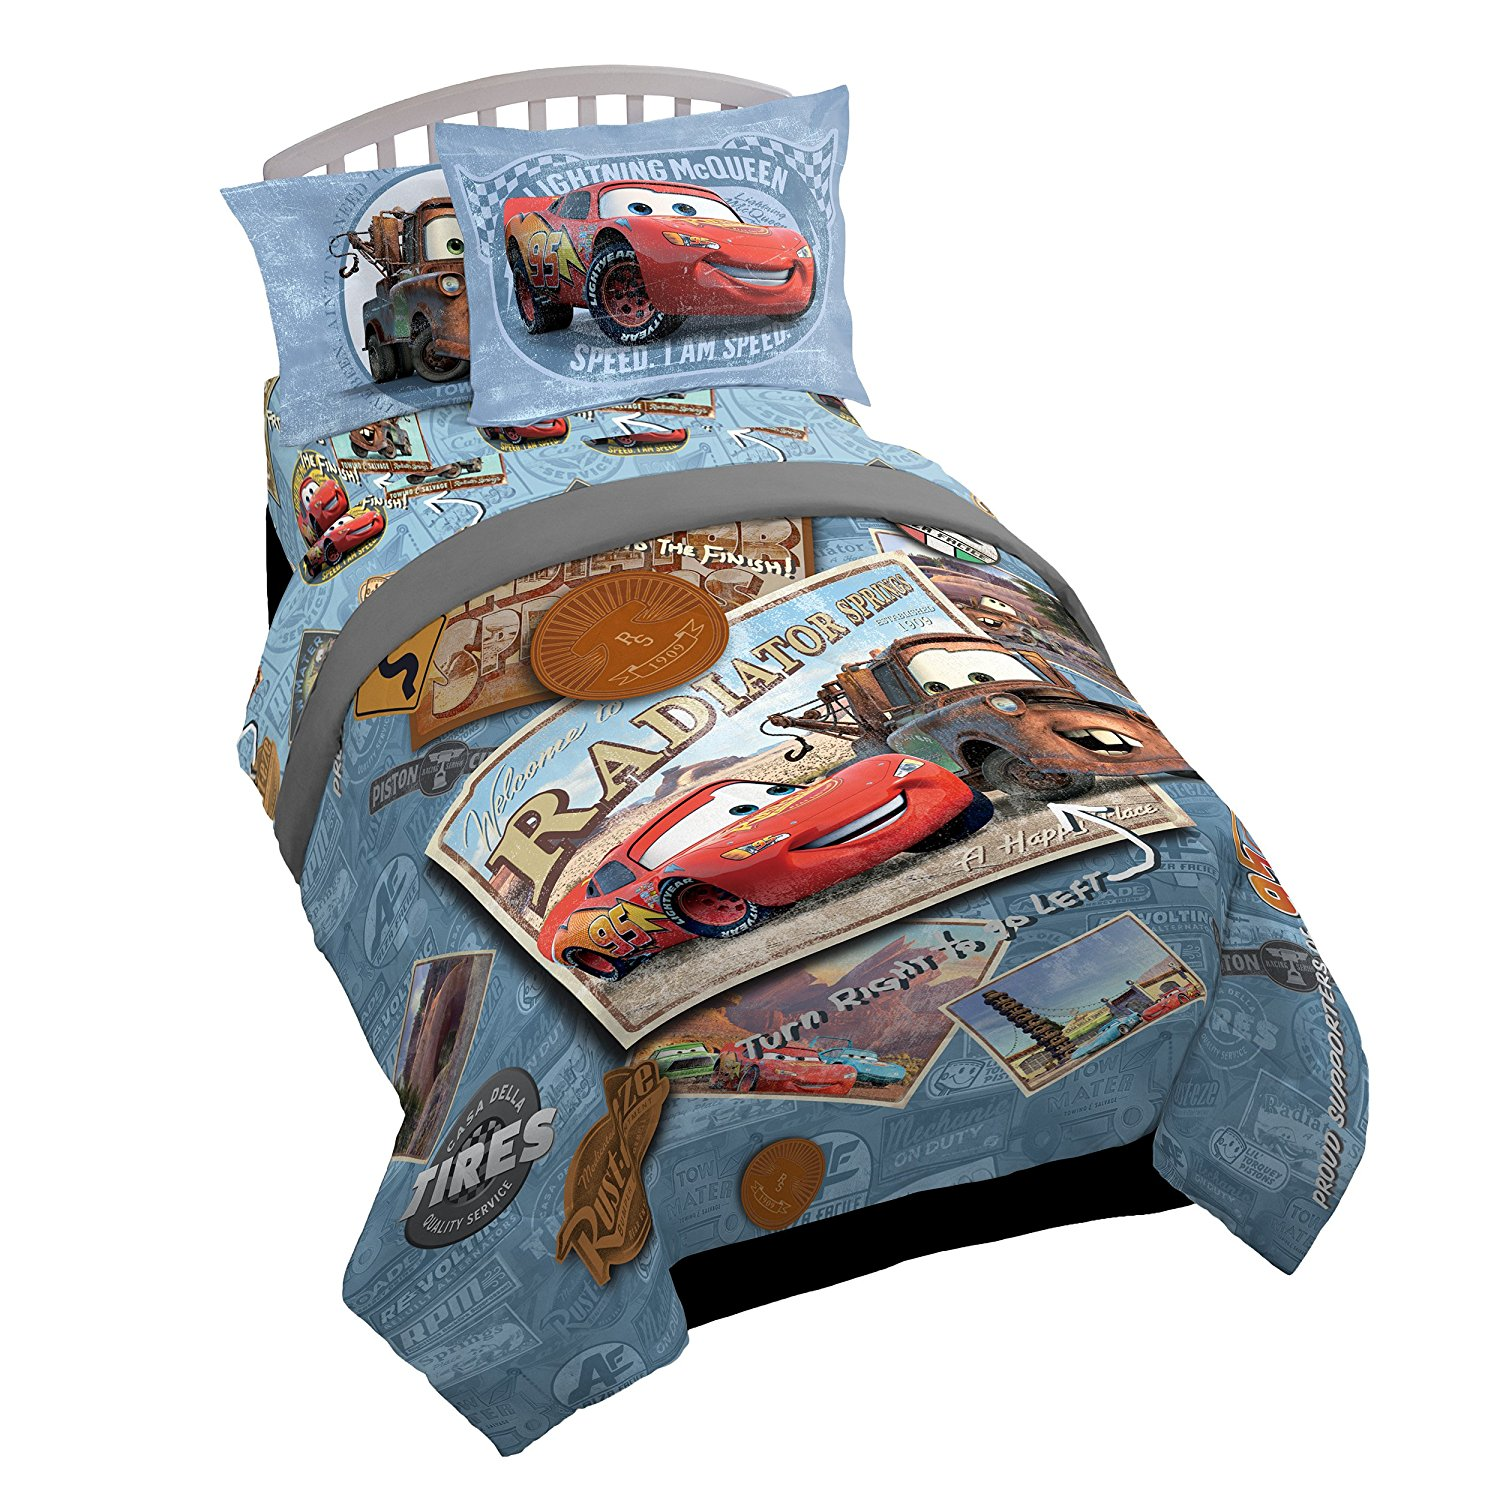 Disney/Pixar Cars Tune Up Blue/Gray 5 Piece Twin Bed In A Bag with Lightning Mcqueen & Mater in Radiator Springs (Official Disney/Pixar Product)